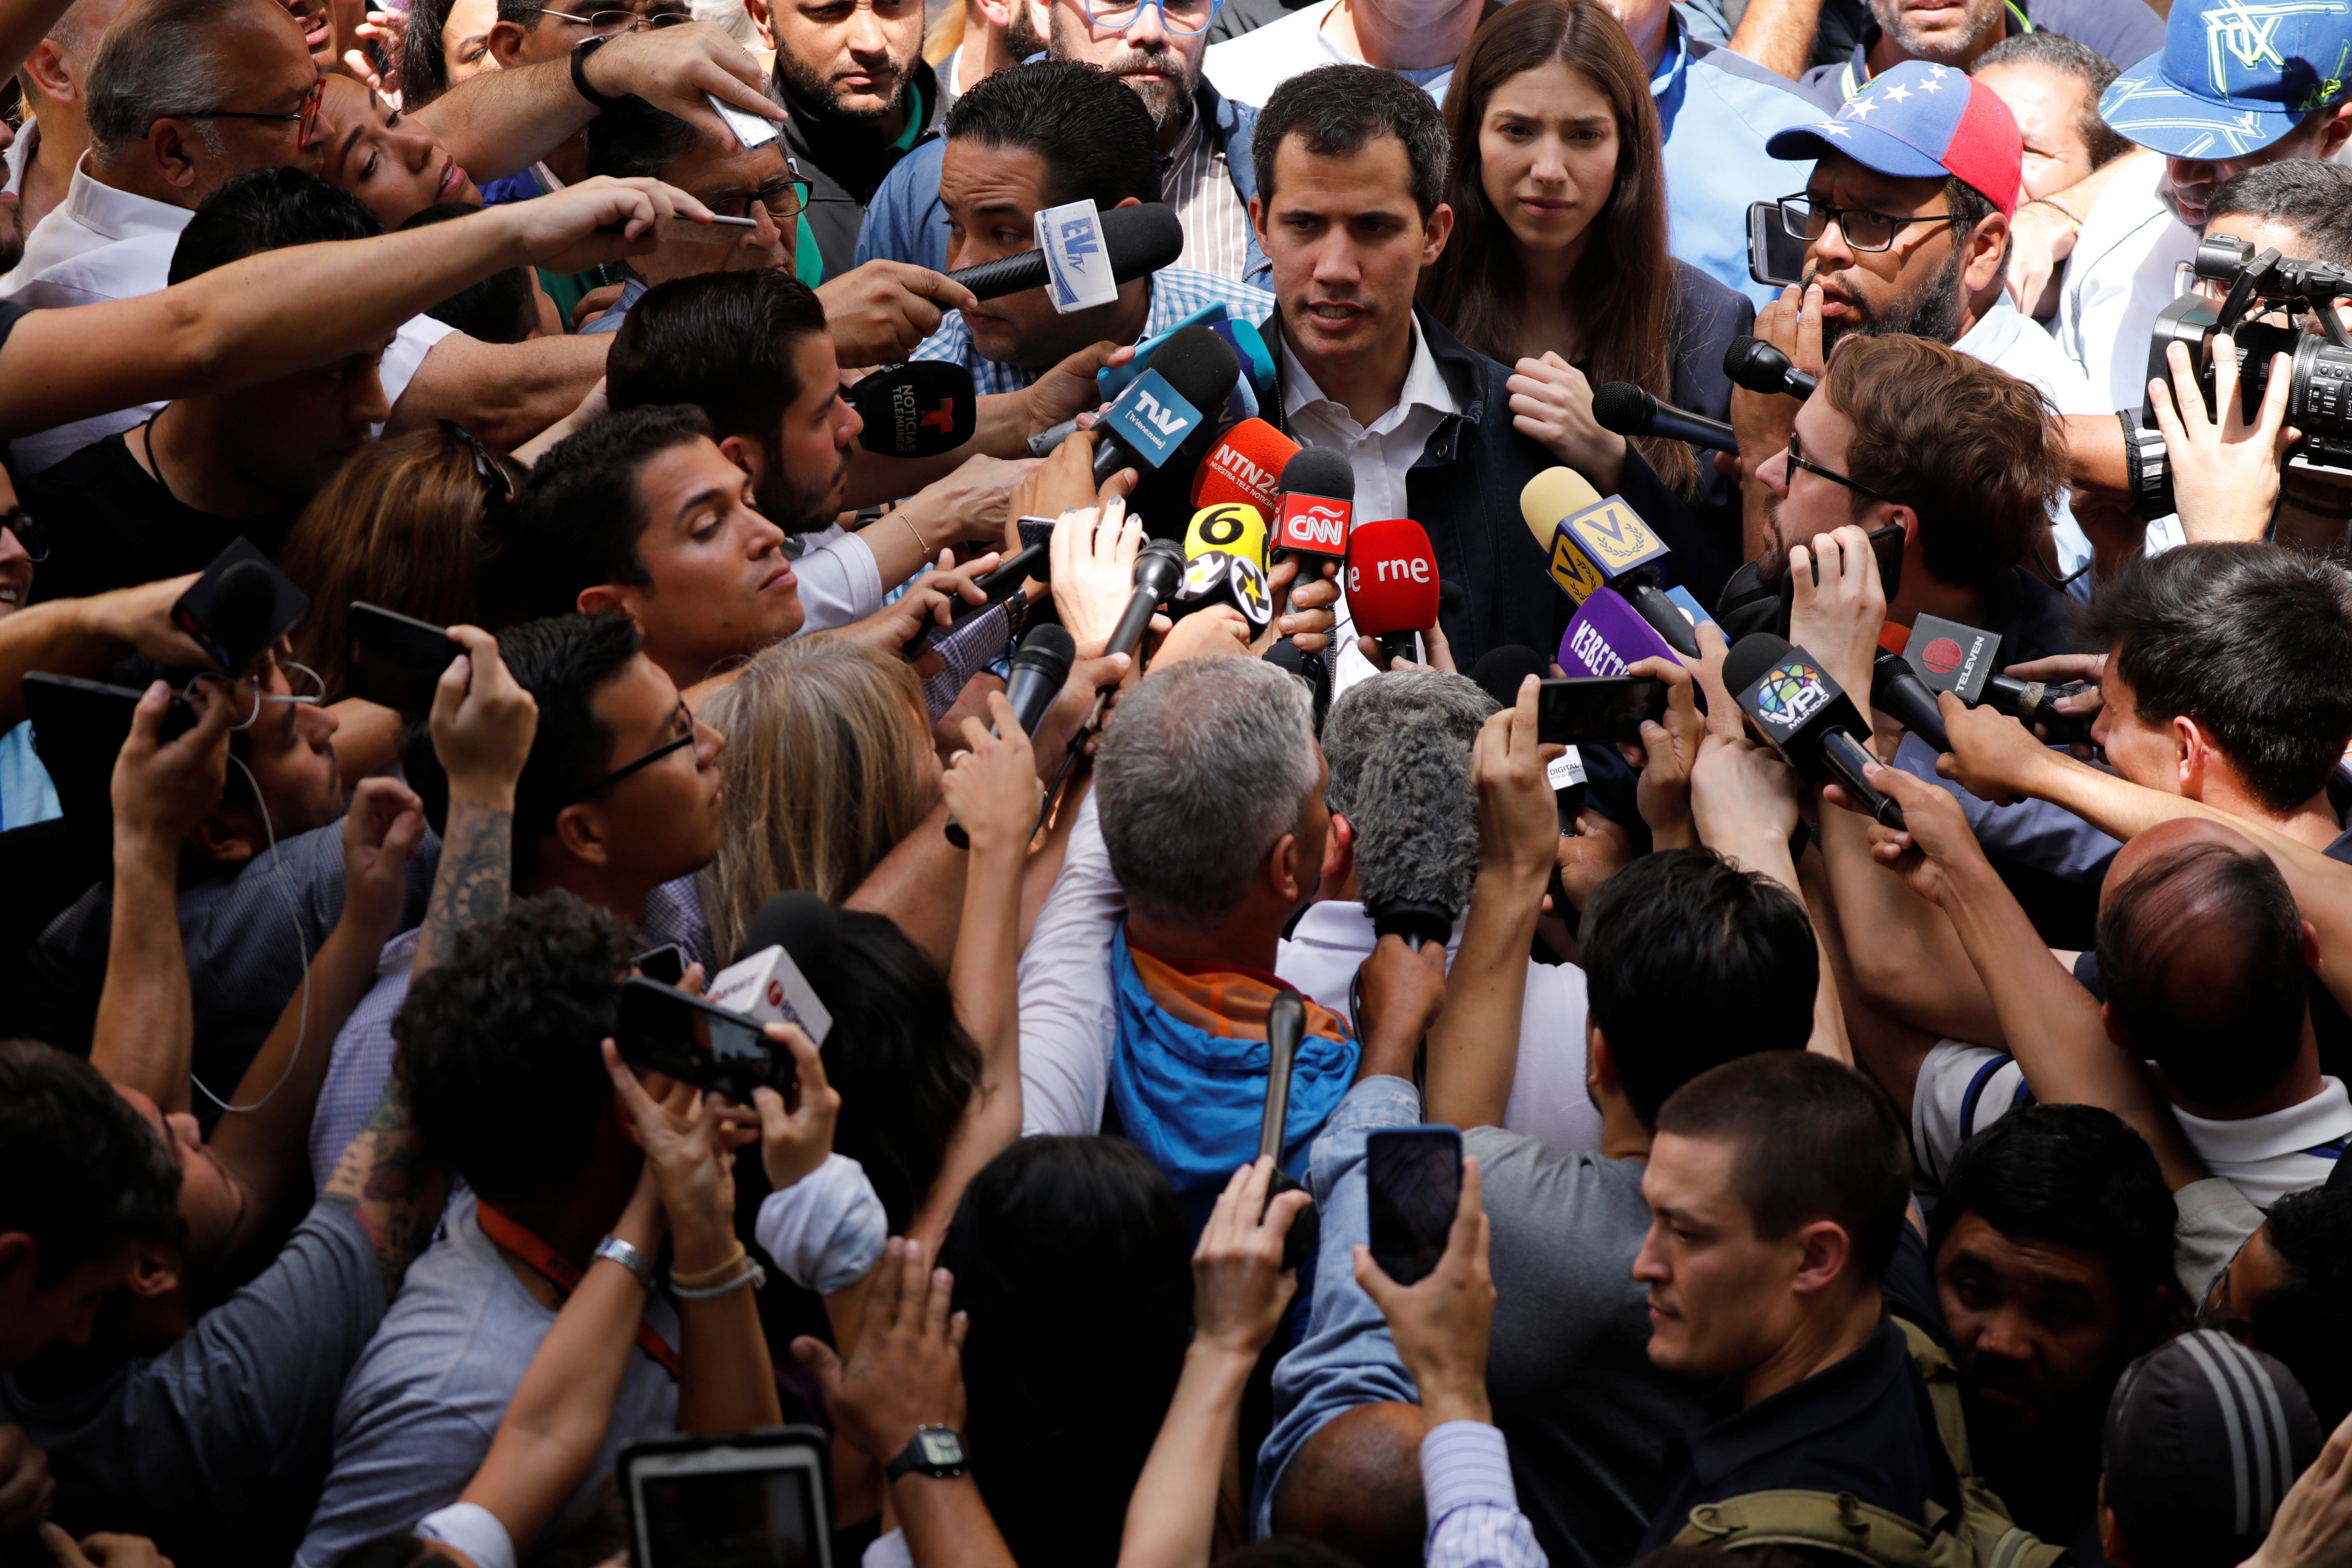 Venezuelan opposition leader and self-proclaimed interim president Juan Guaido accompanied by his wife Fabiana Rosales, speaks to the media after a holy Mass at a local church in Caracas, Venezuela, January 27, 2019. REUTERS/Carlos Barria